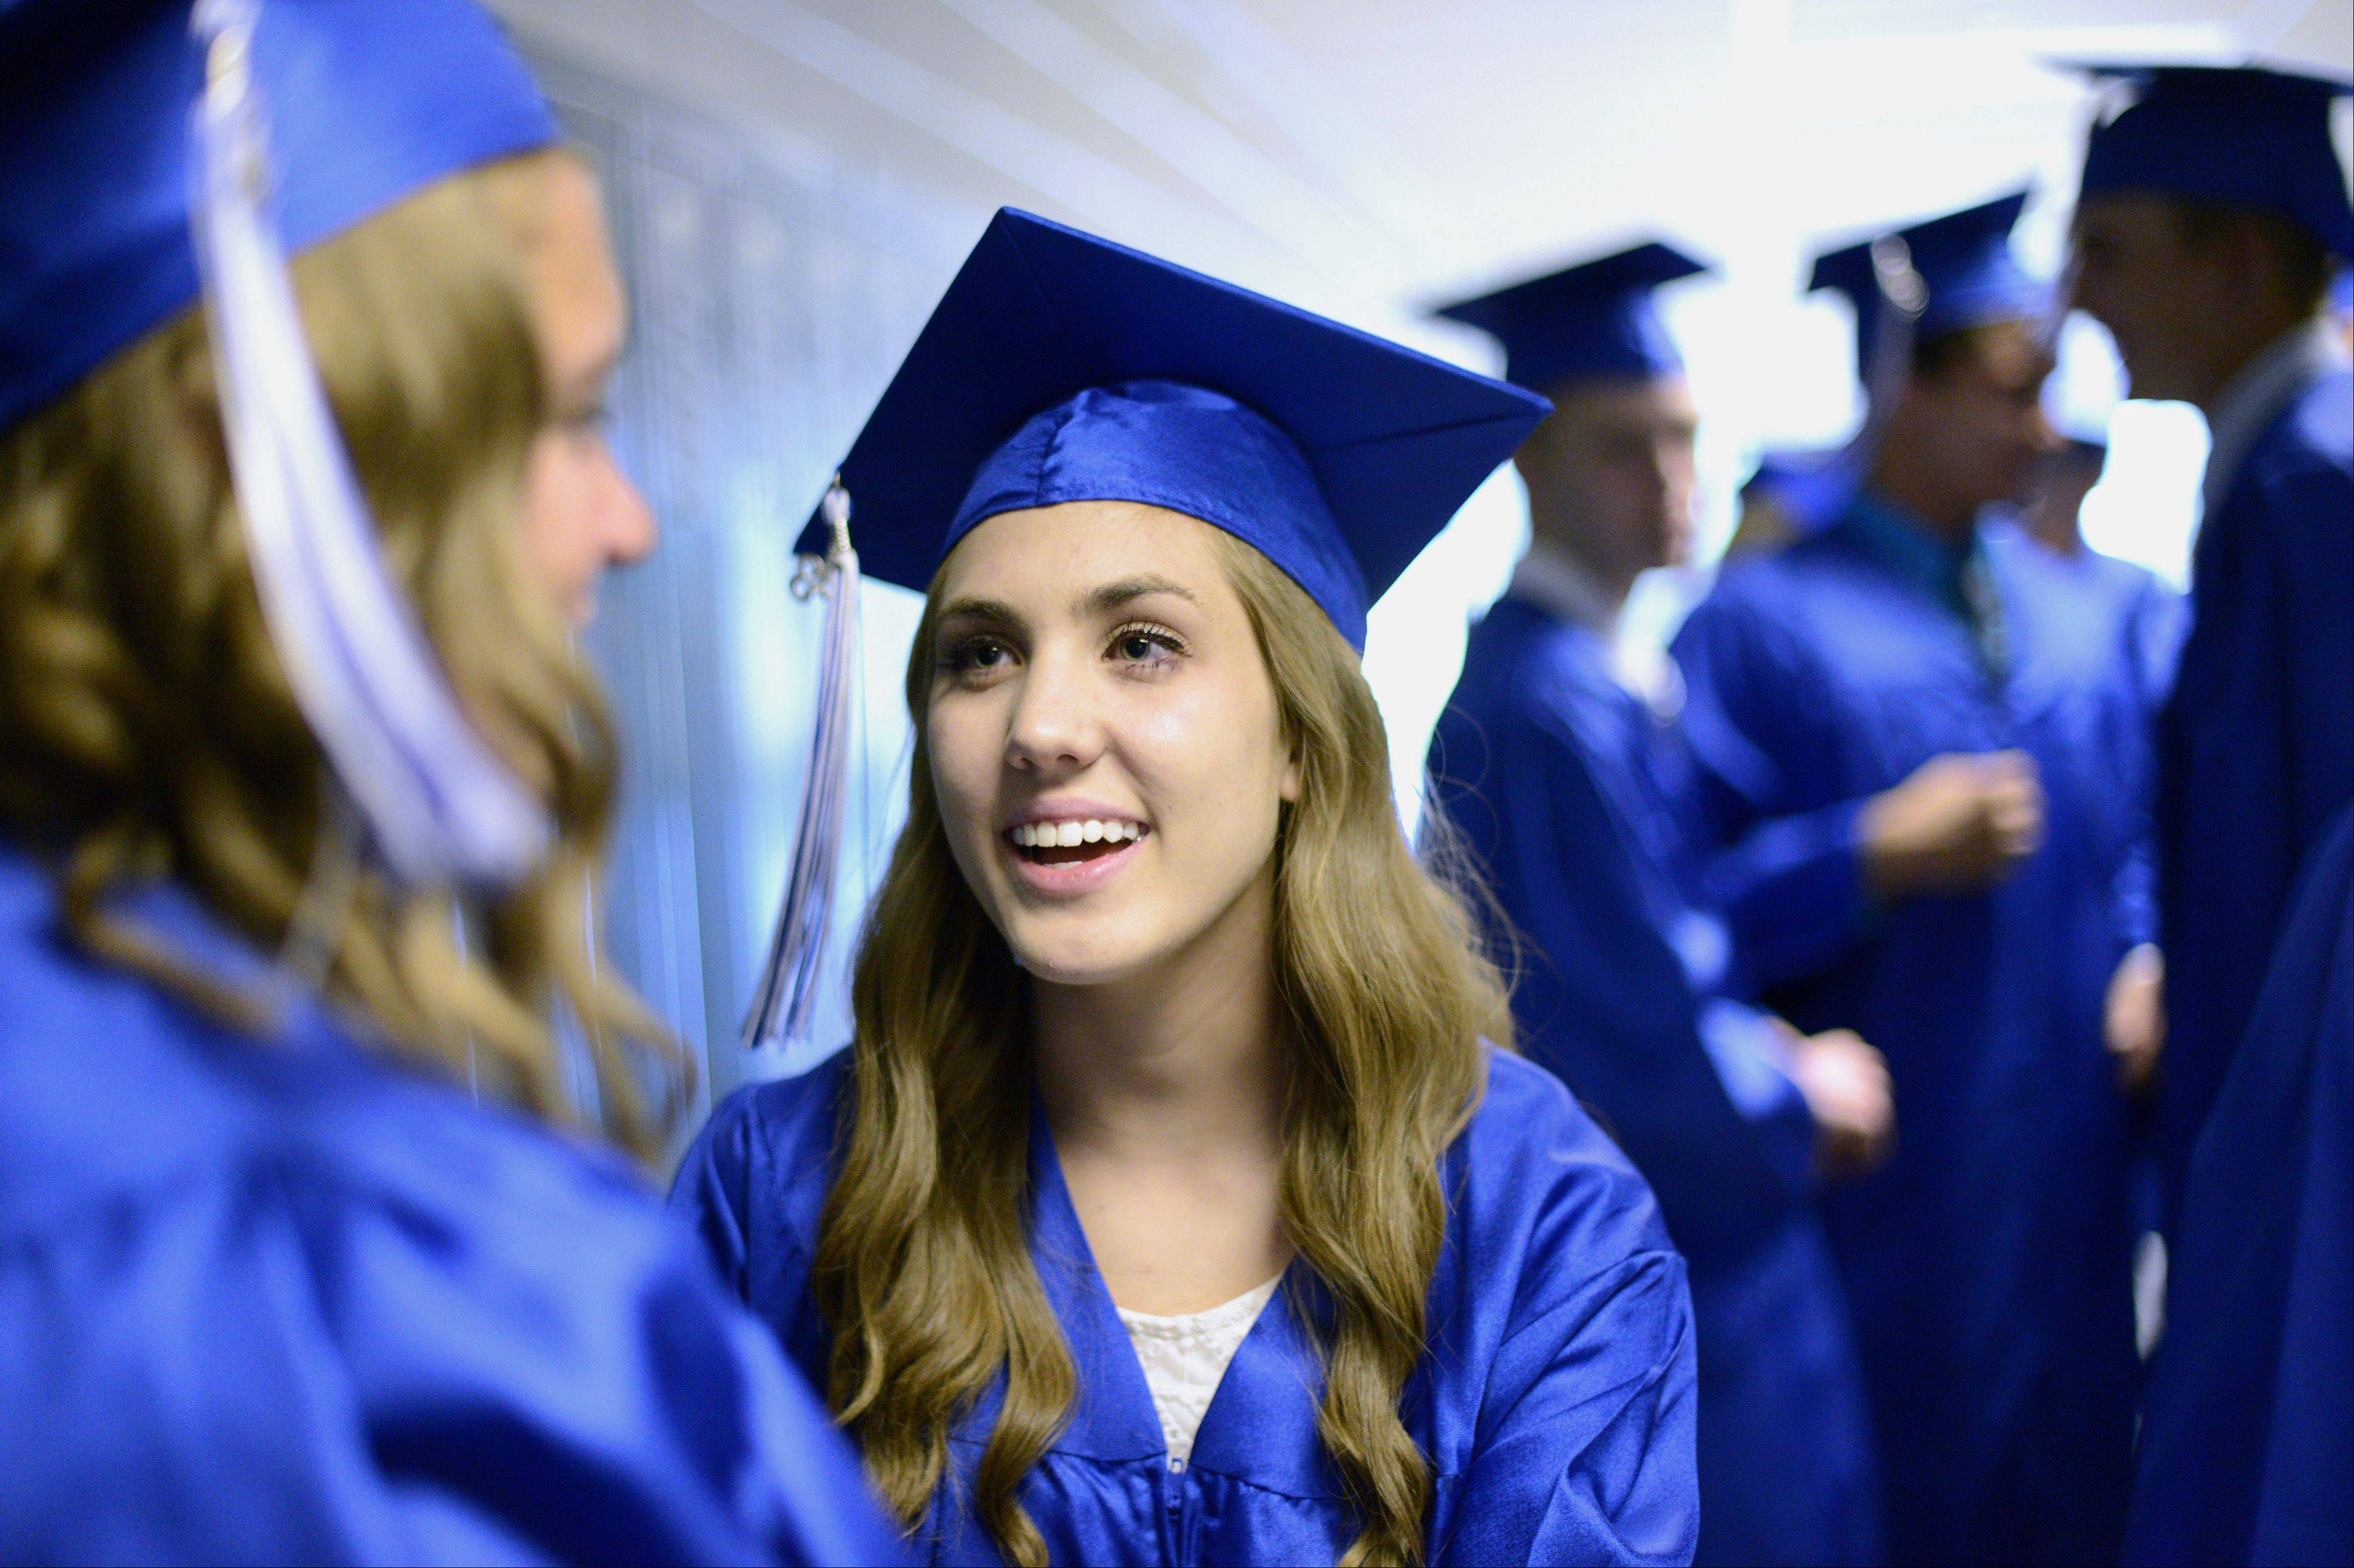 Elizabeth Farwell, 18, of West Dundee talks with a classmate while they line up for the commencement ceremony.